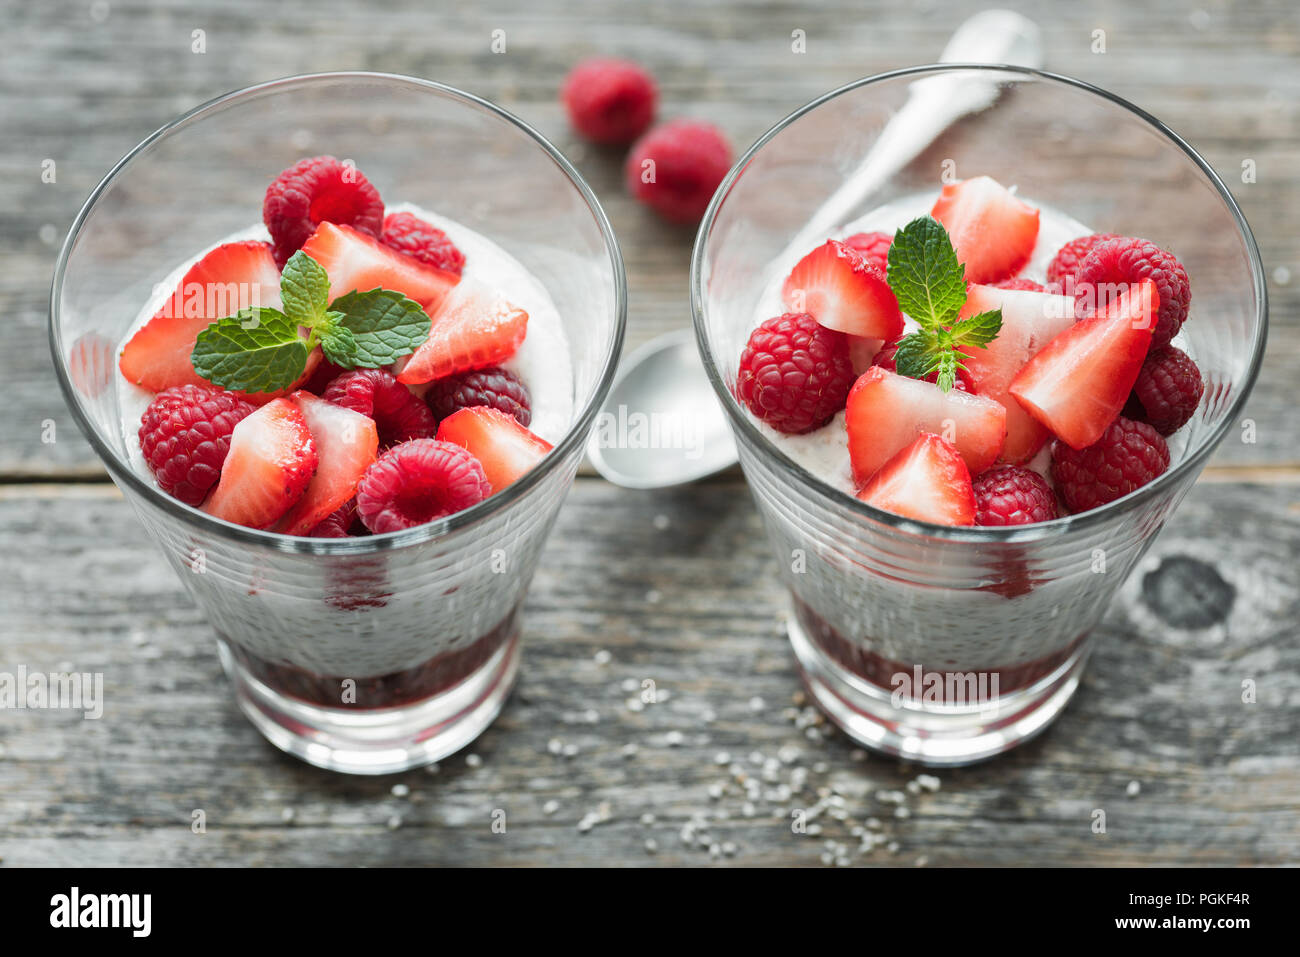 Protein chia pudding with fresh berries on wooden background. Top view, selective focus - Stock Image